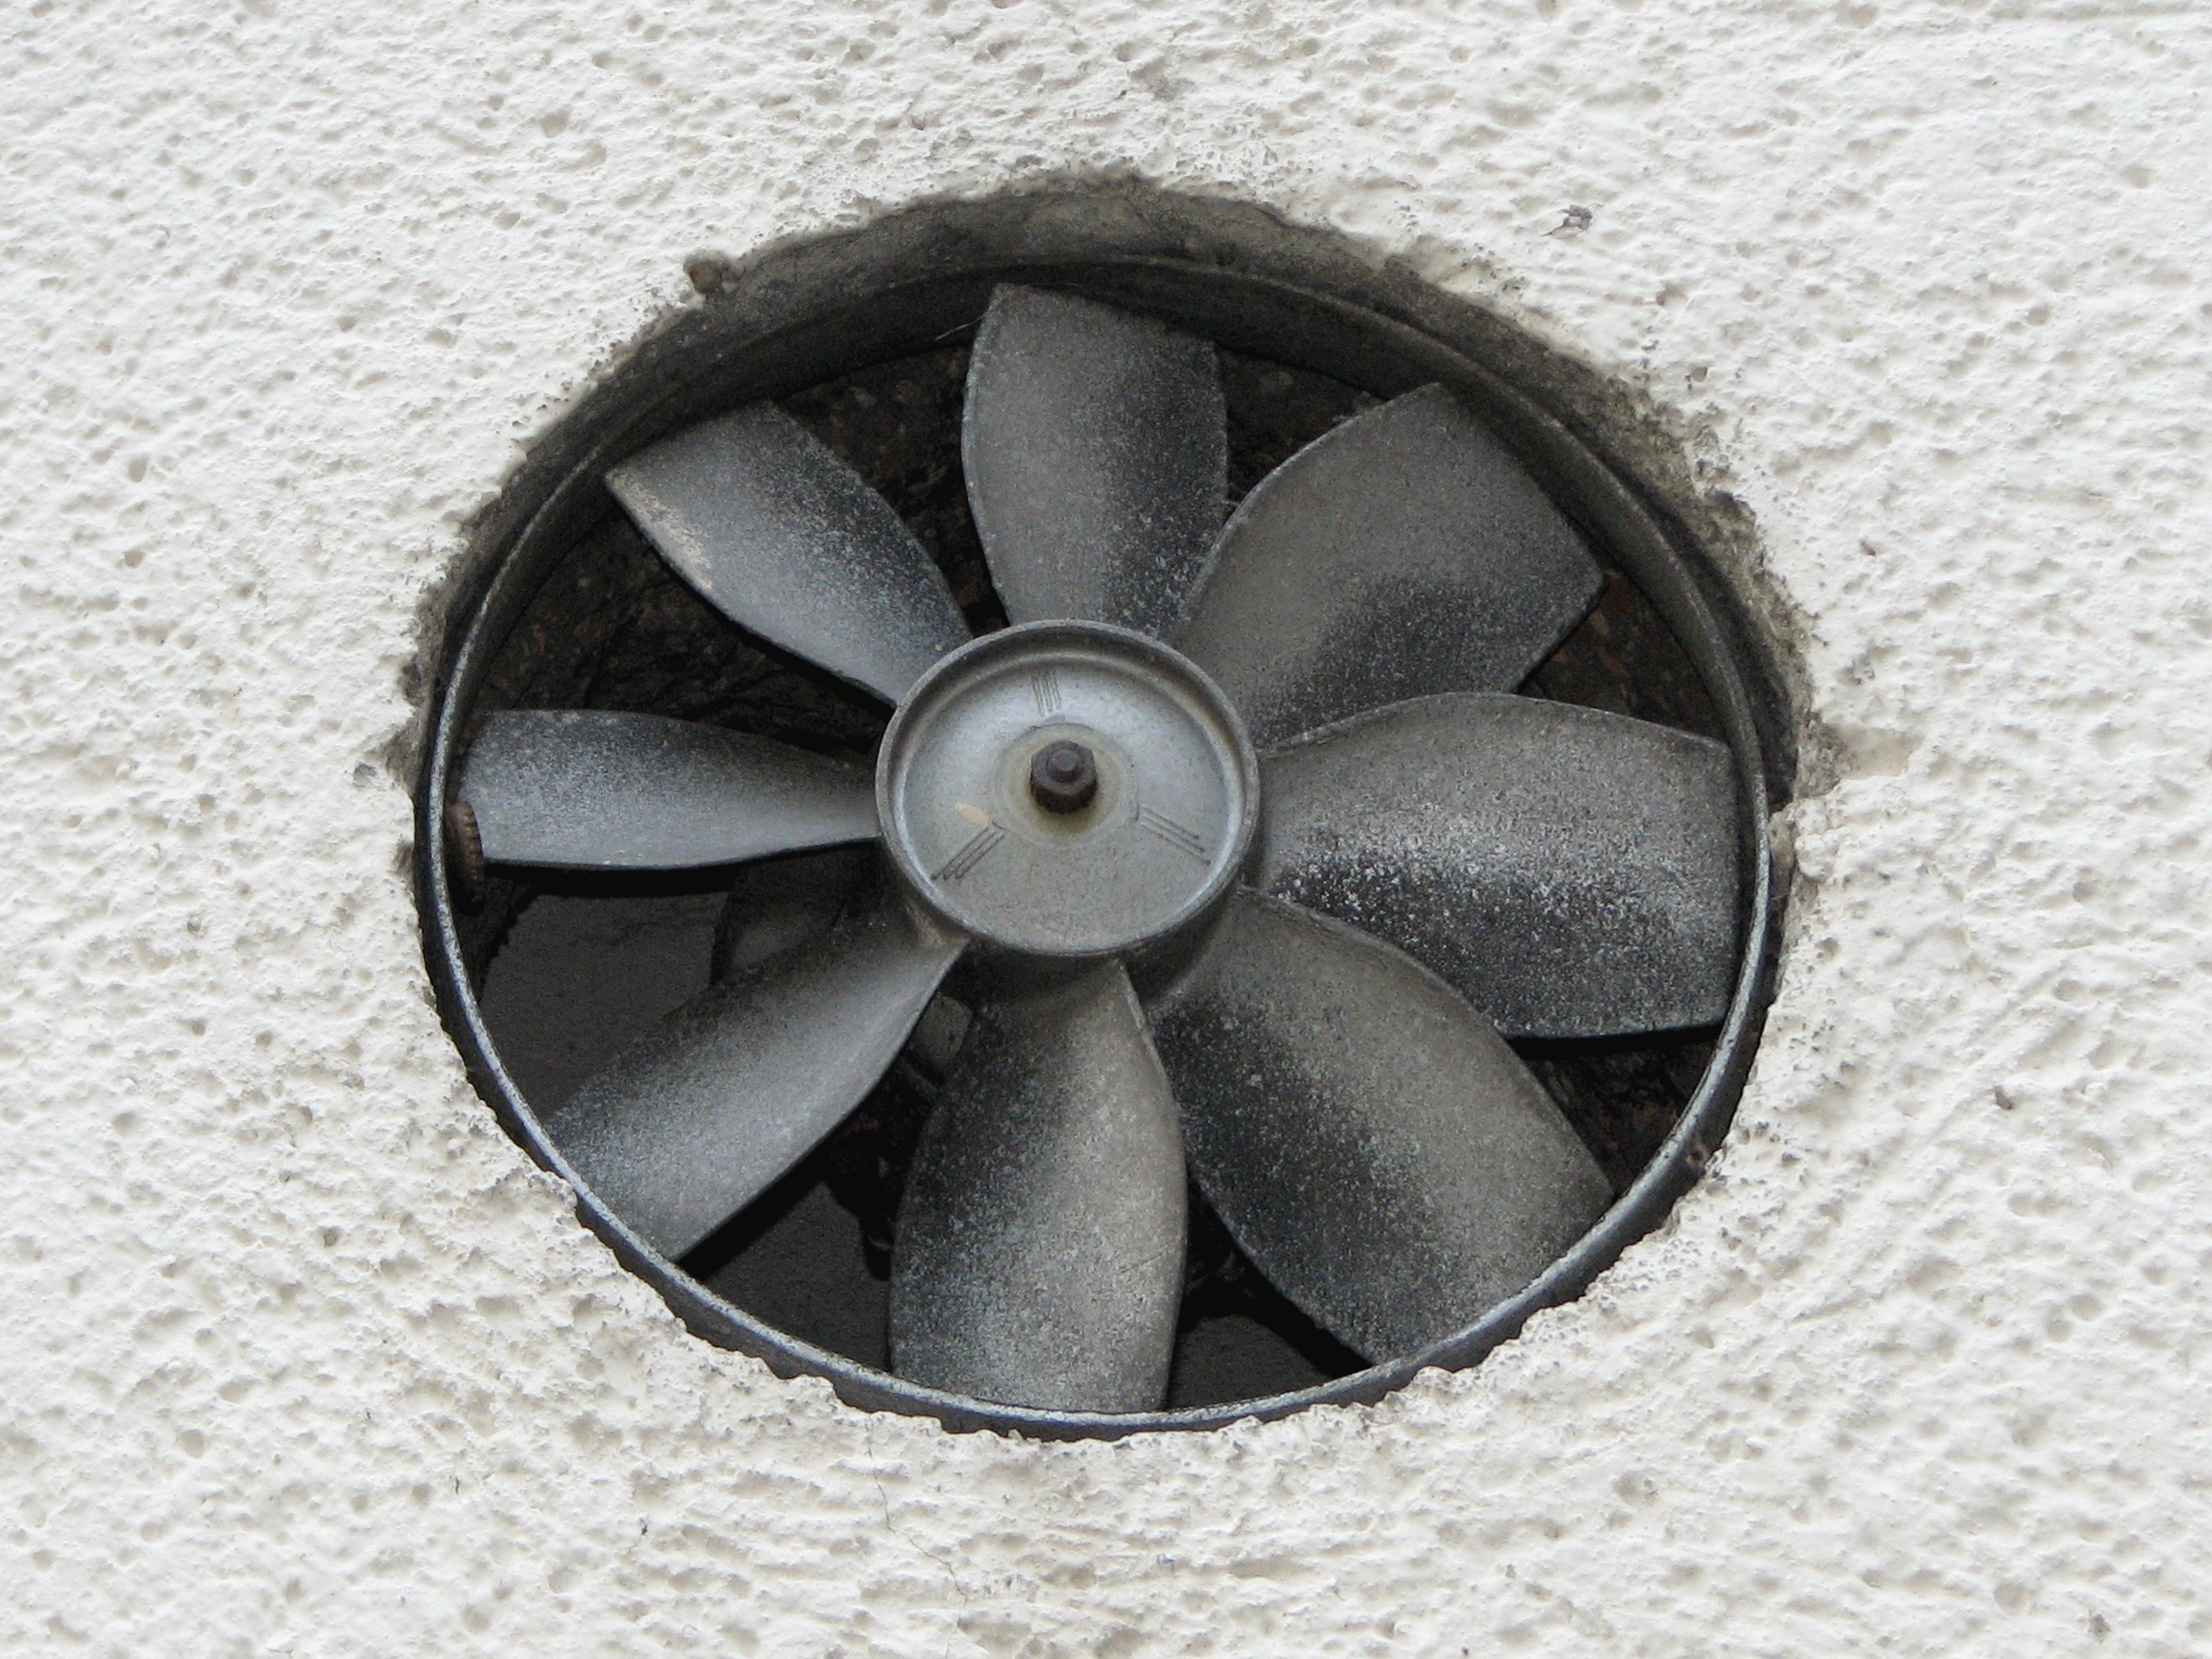 File:Exhaust-fan-on-side-wall.jpg - Wikimedia Commons